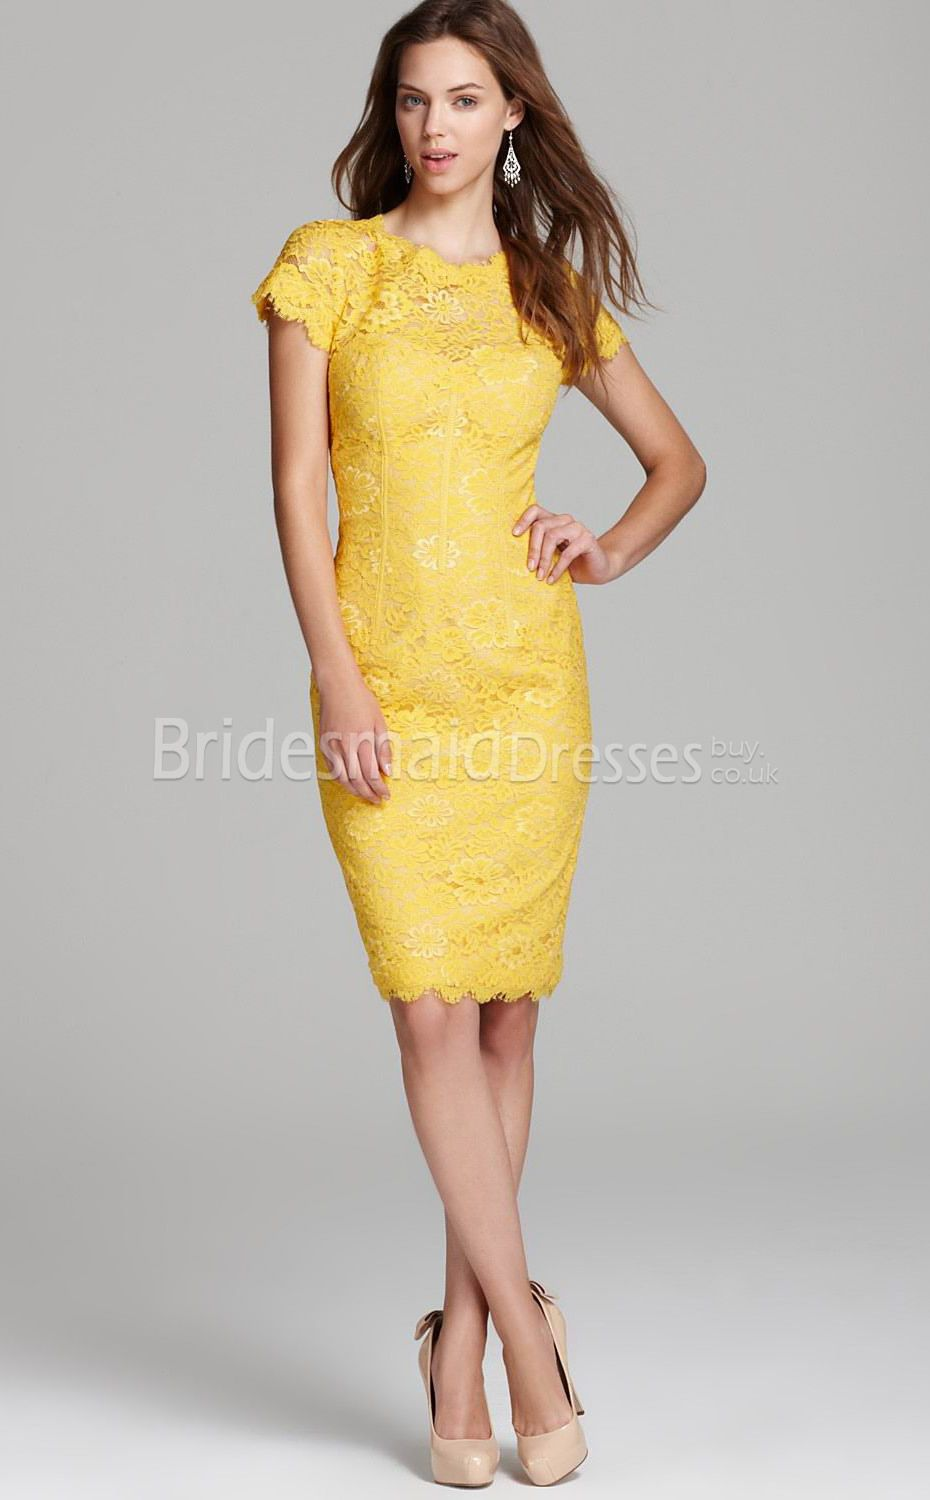 Lace yellow dress with sleeves recommend to wear in everyday in 2019